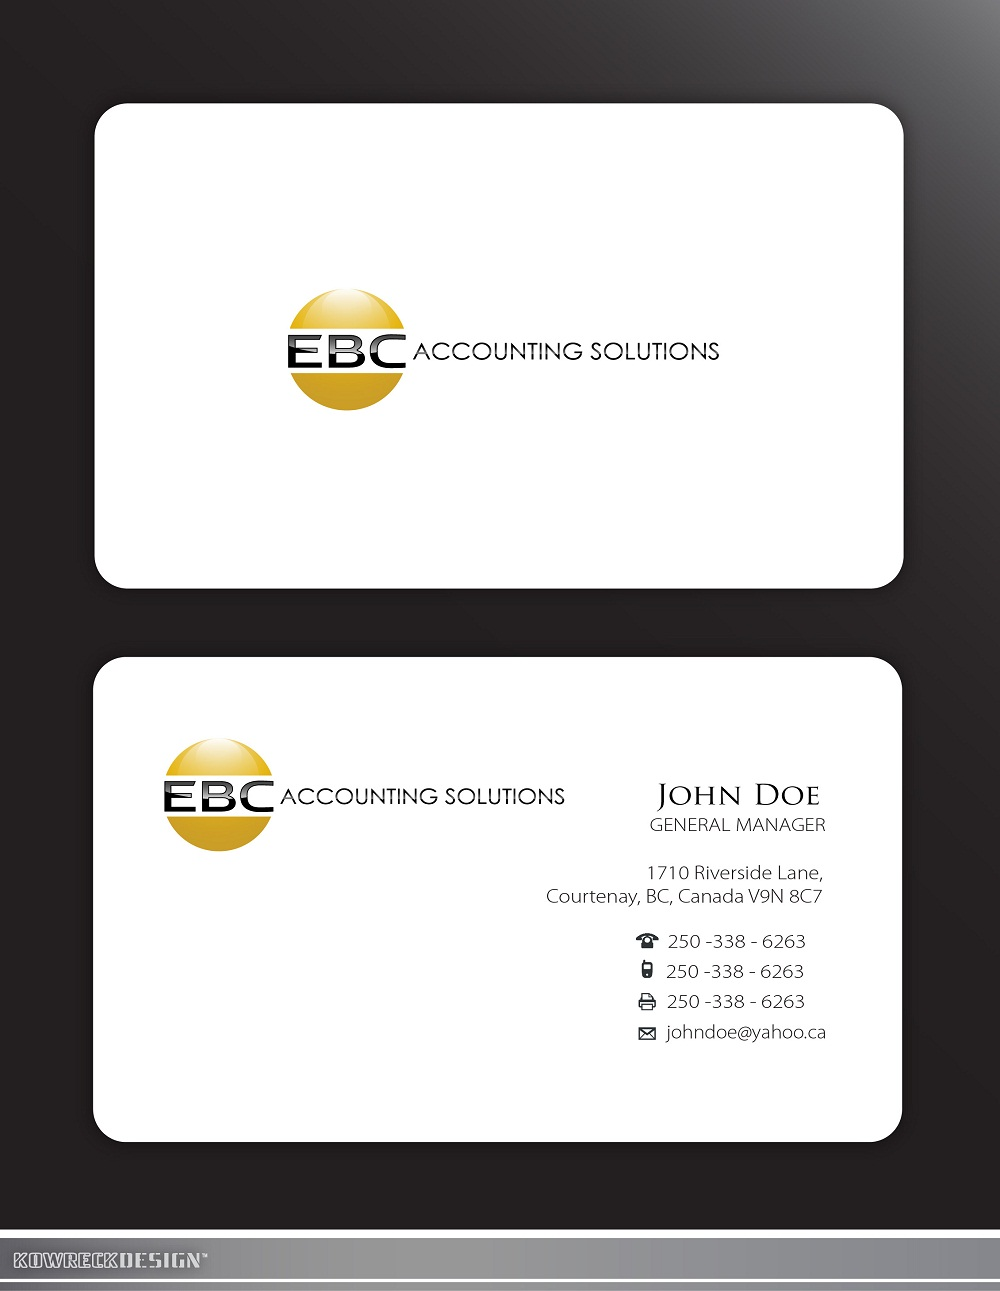 Logo Design by kowreck - Entry No. 201 in the Logo Design Contest New Logo Design for EBC Accounting Solutions.